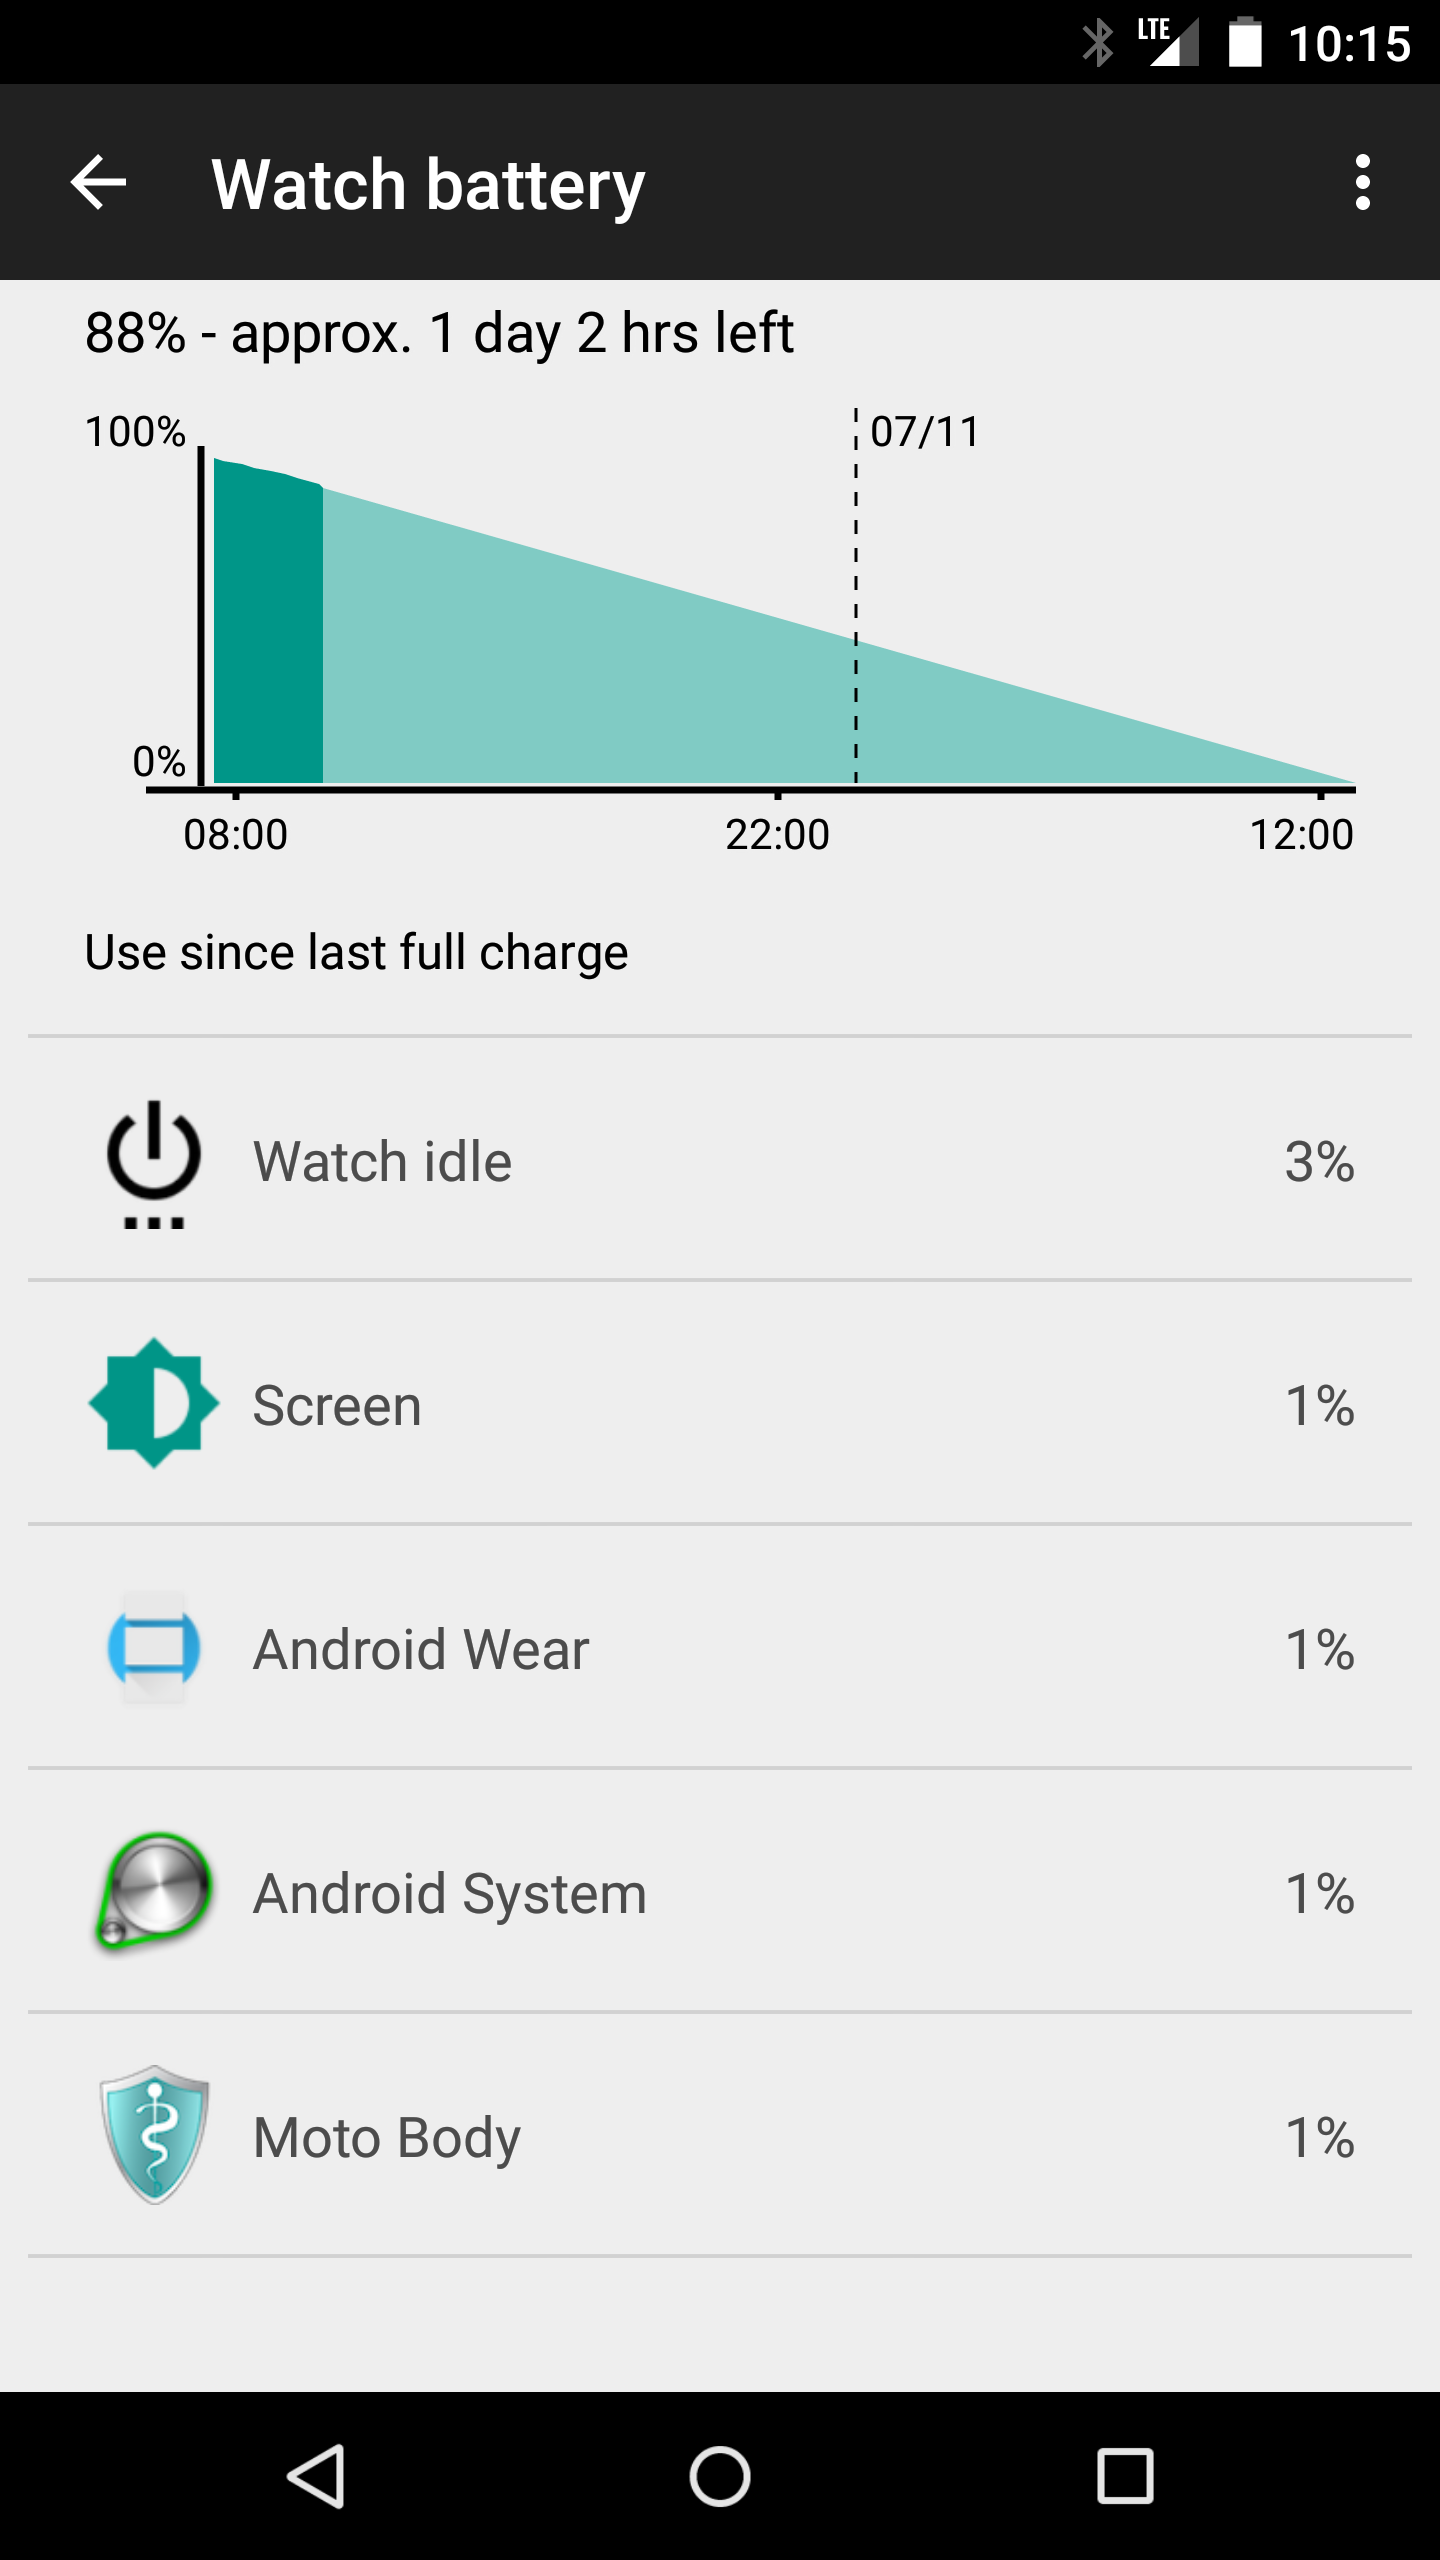 Find Usage Lovely android Wear is there A Way to Find the Battery Usage Of Apps On